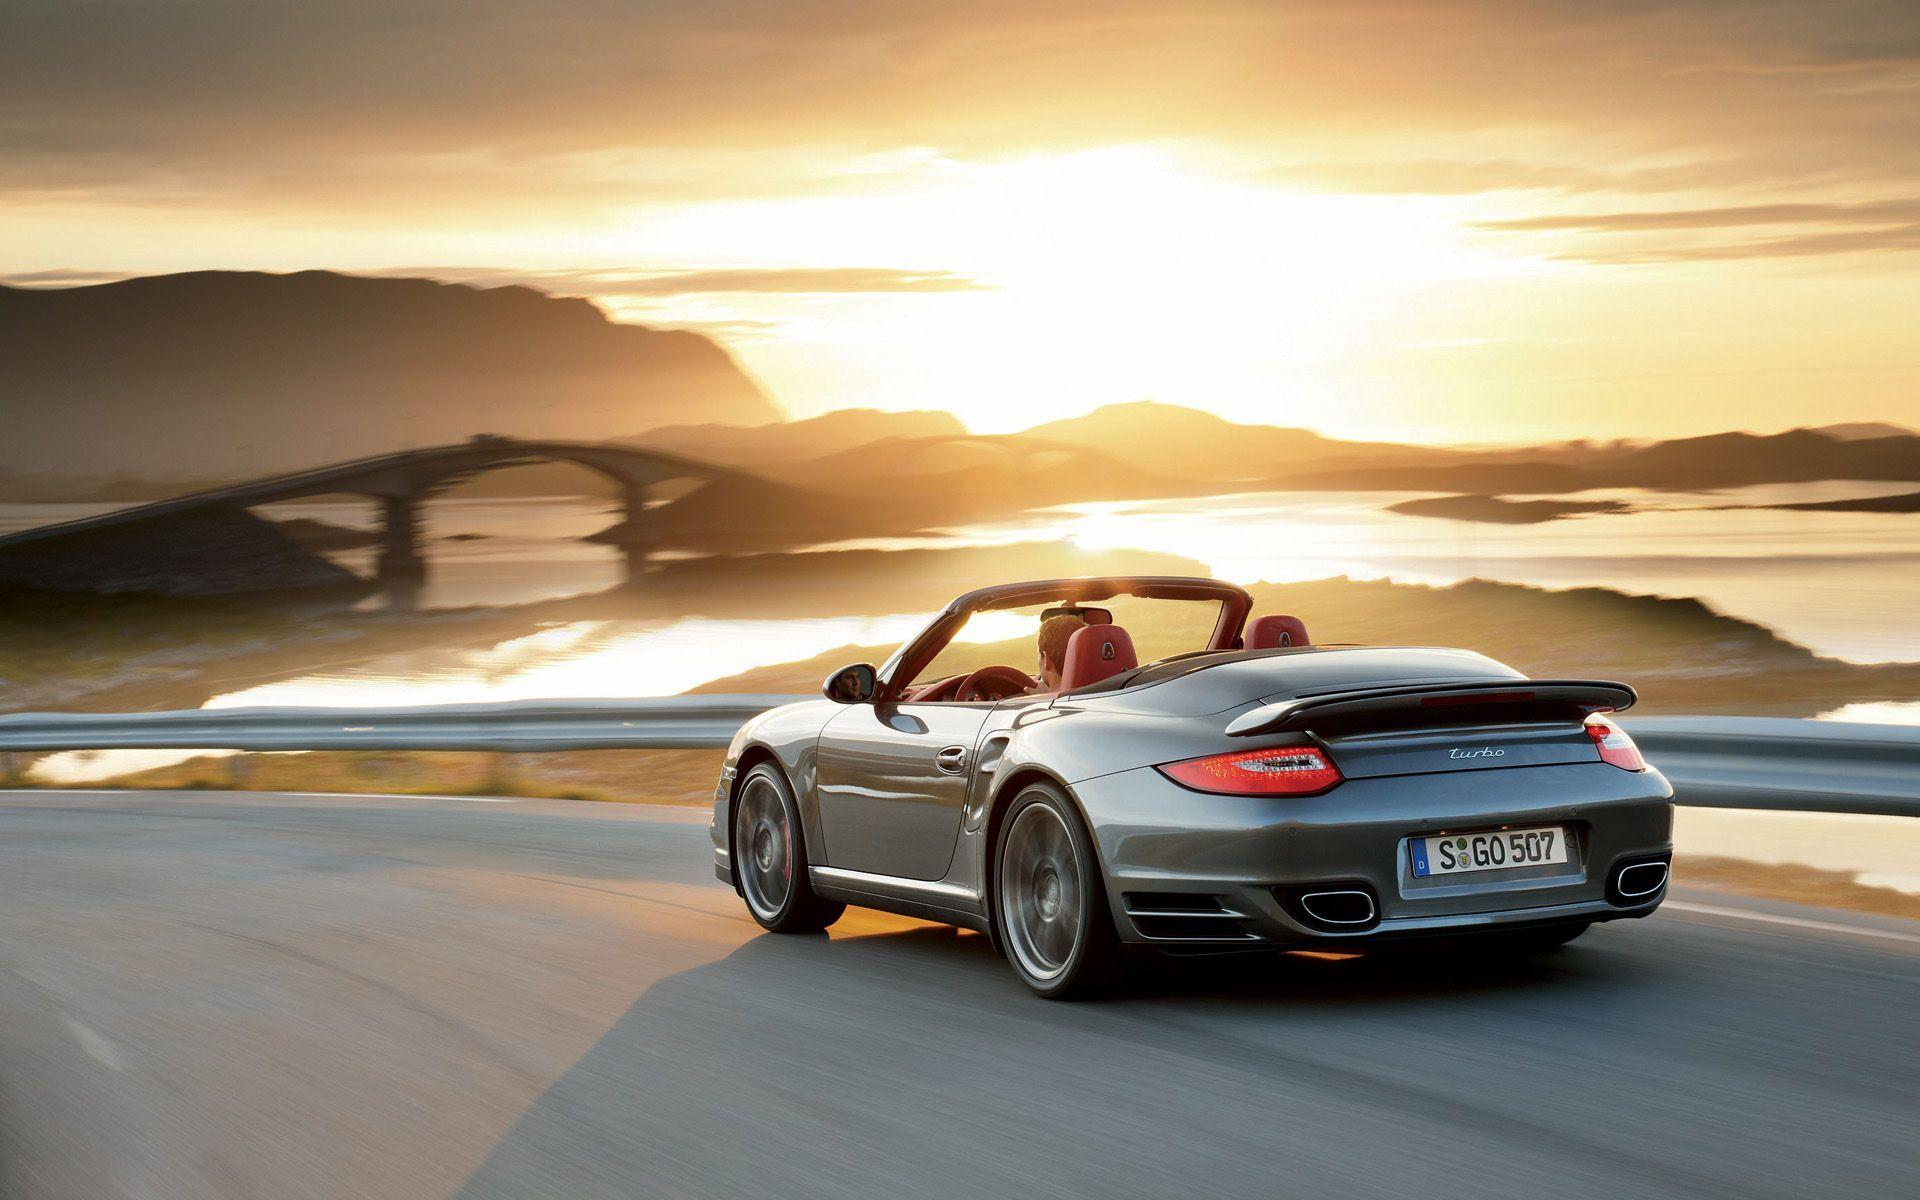 Porsche 911 Turbo Cabriolet wallpaper - 394945